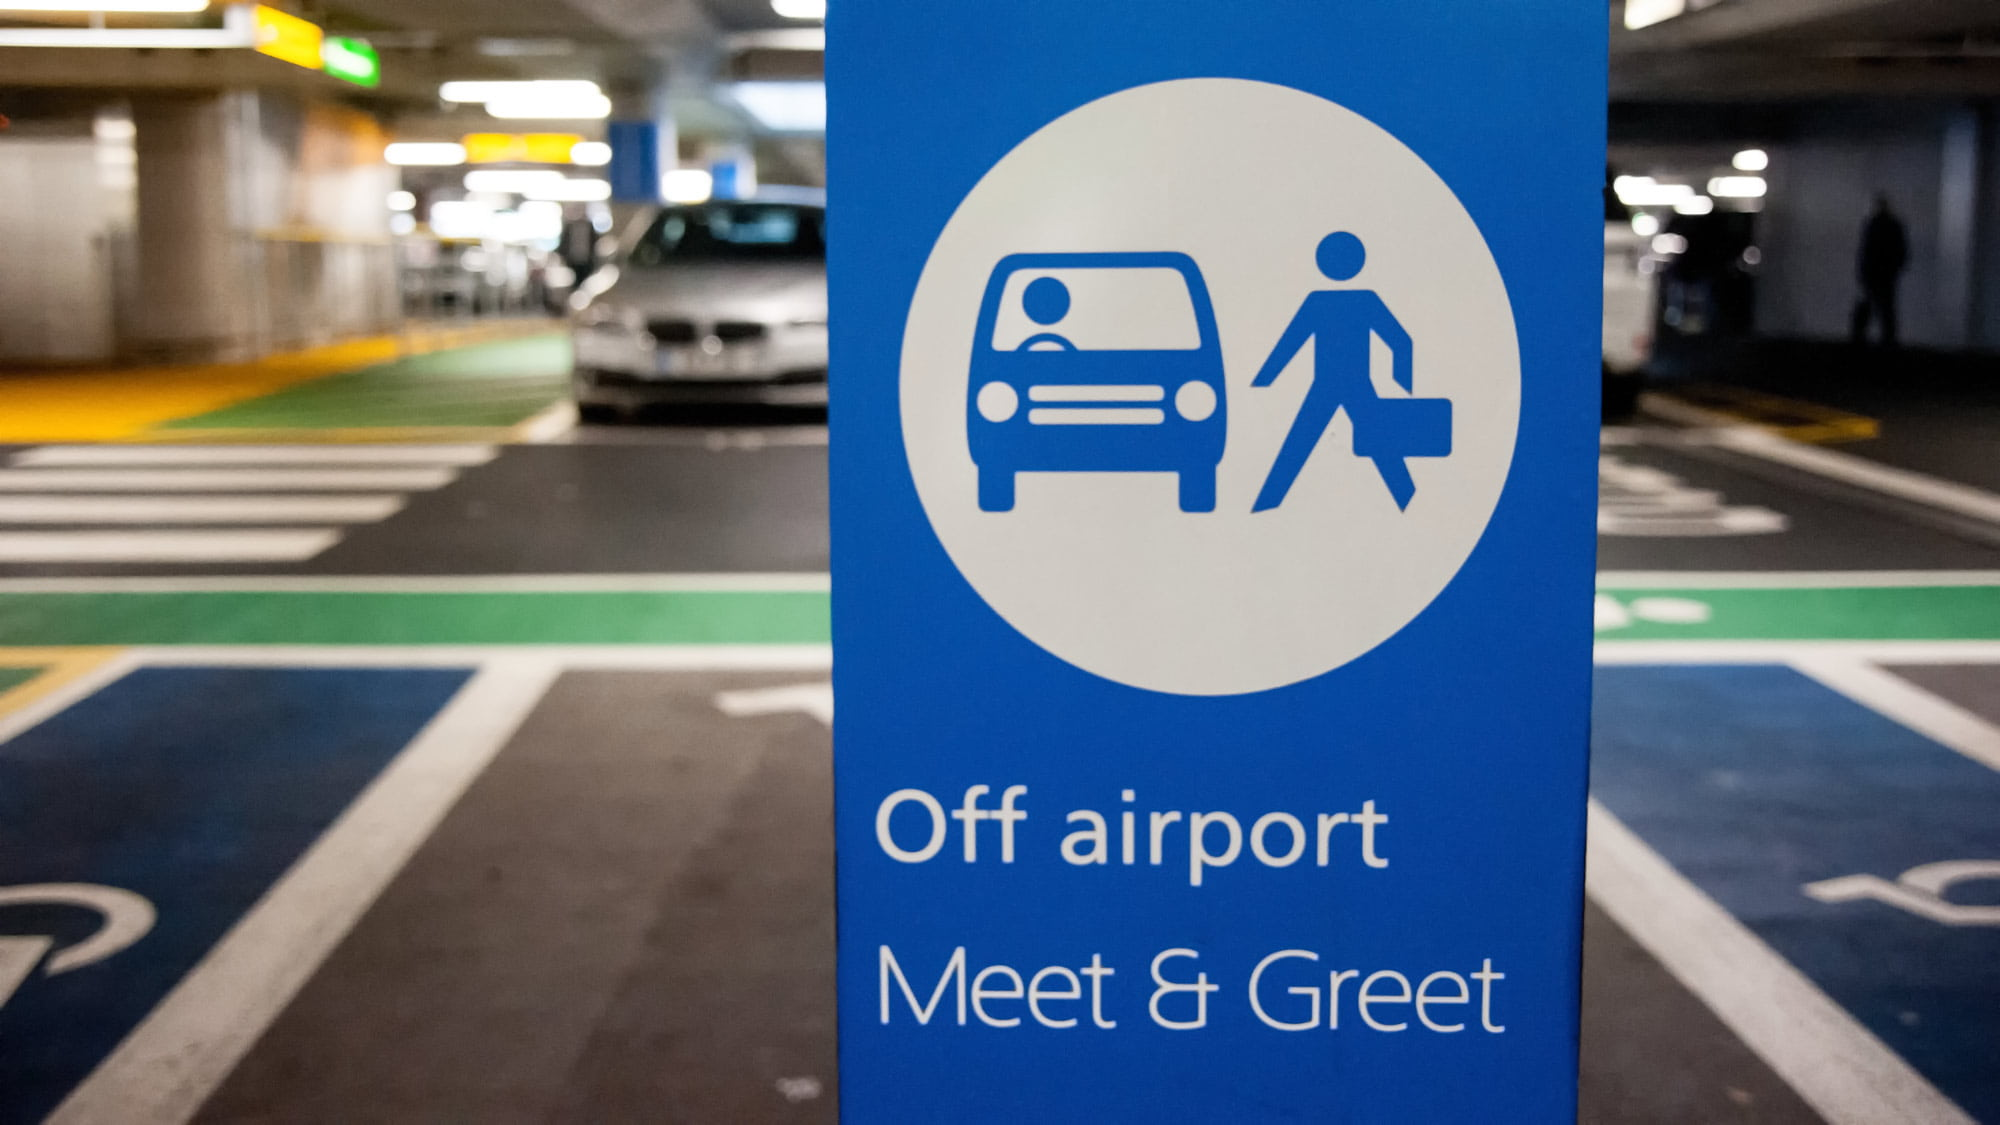 airport meet and greet service